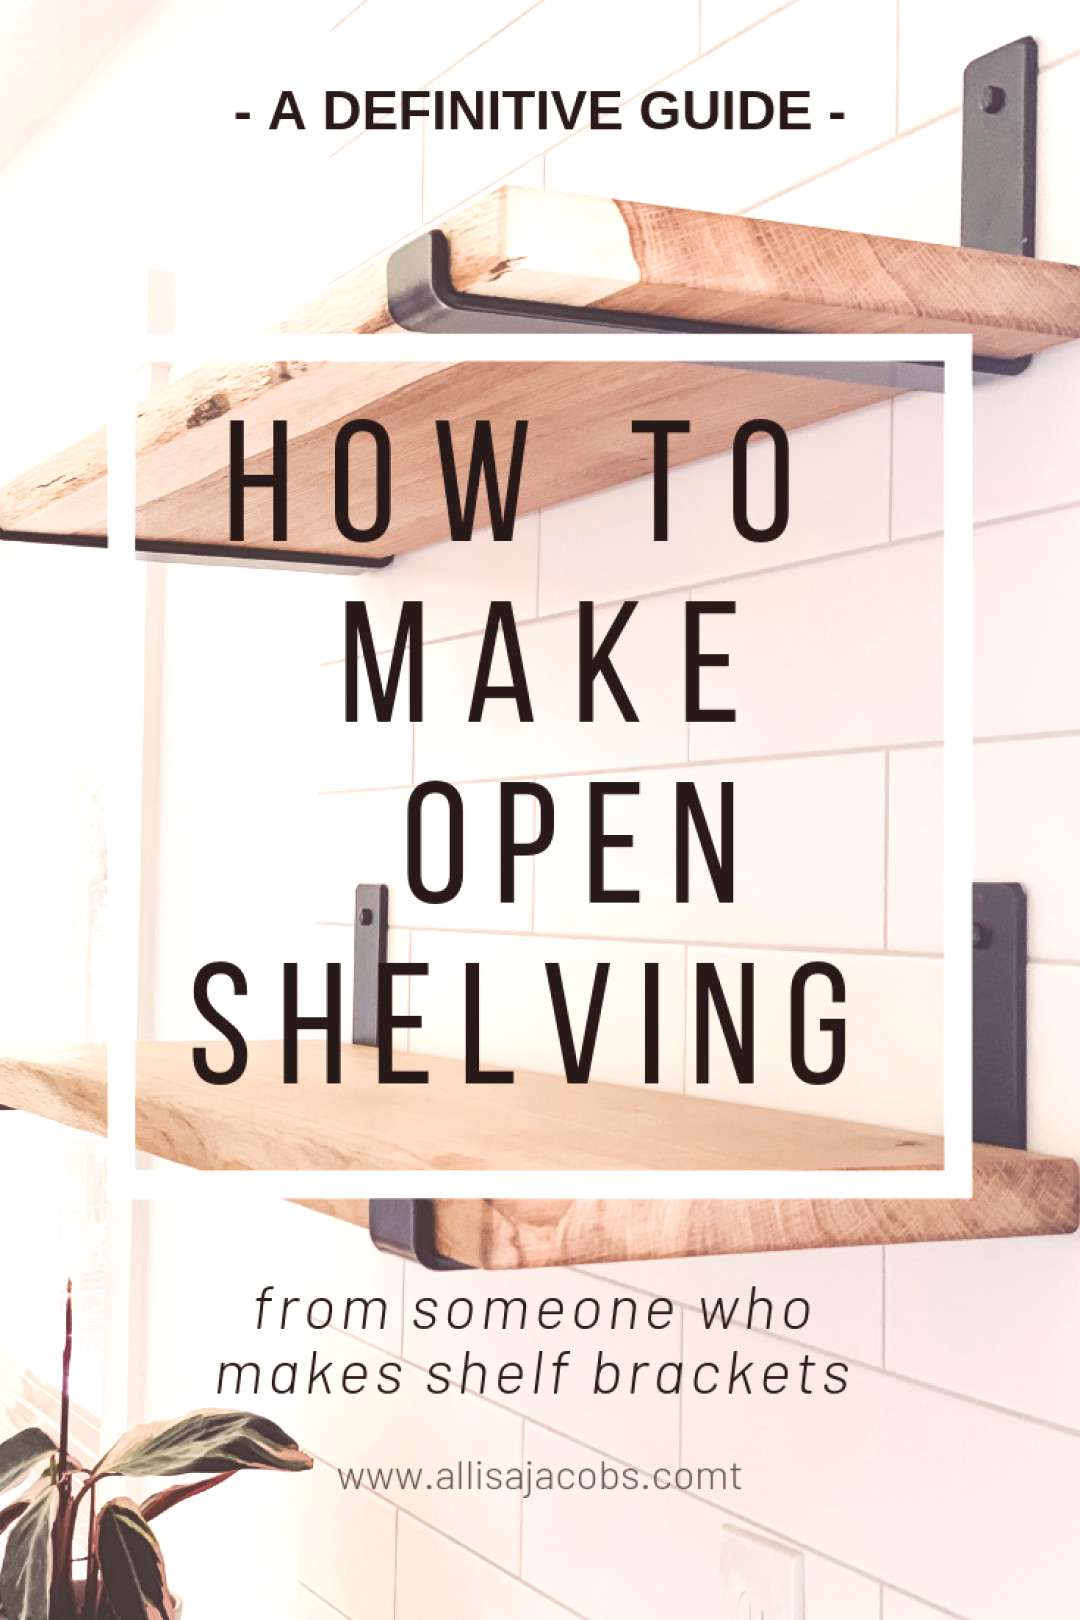 step by step guide on how to make open shelving from someone who actually creates shelf brackets, t